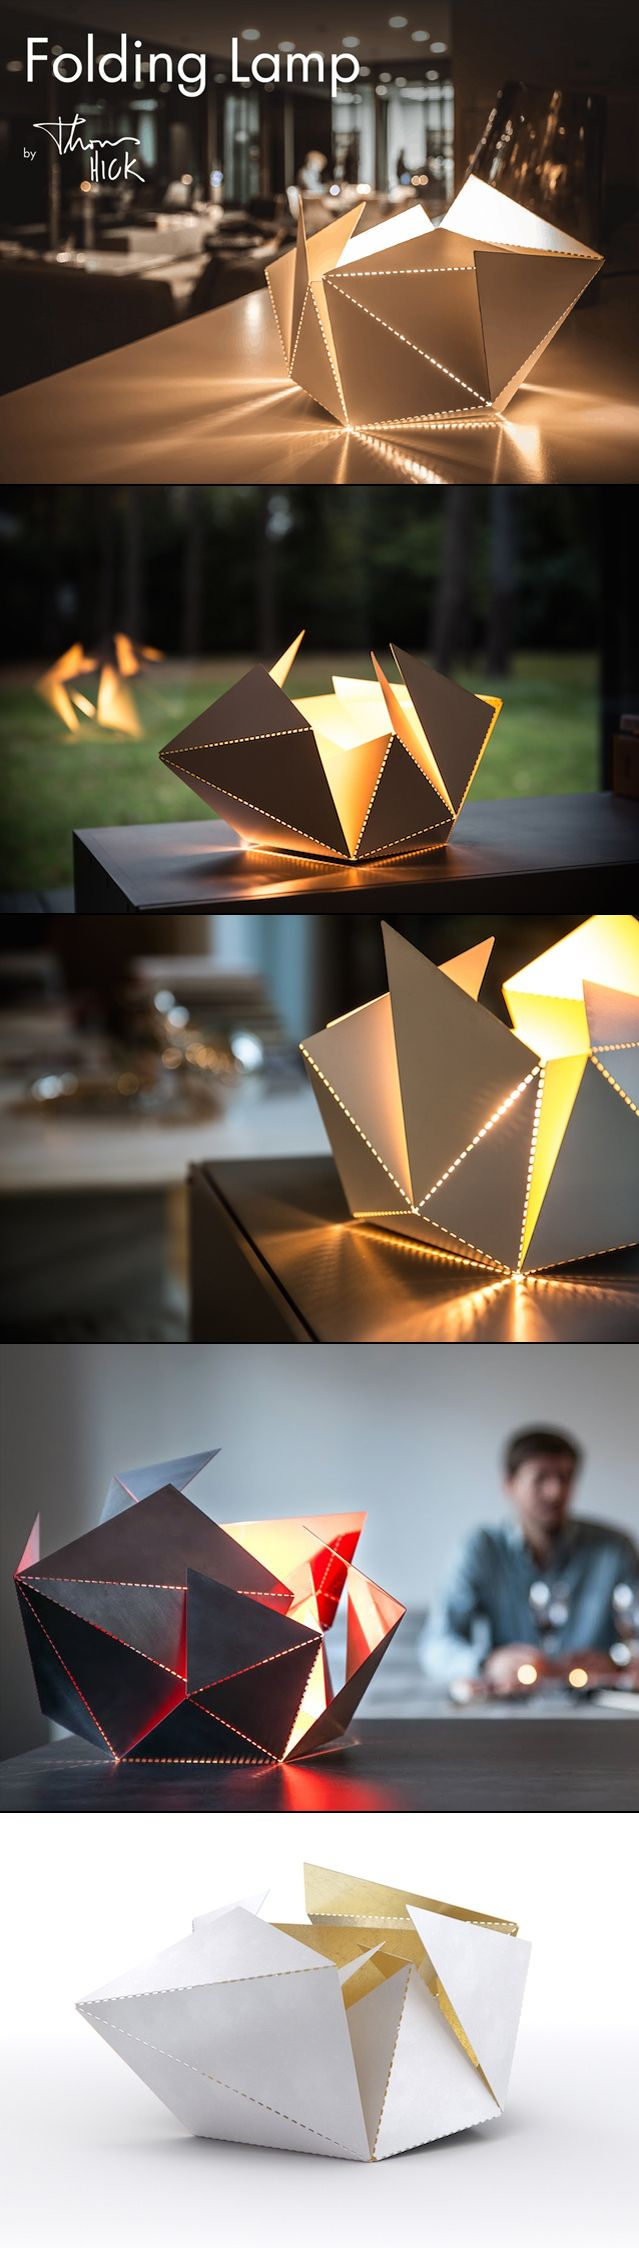 Folding Lamp by Thomas Hick